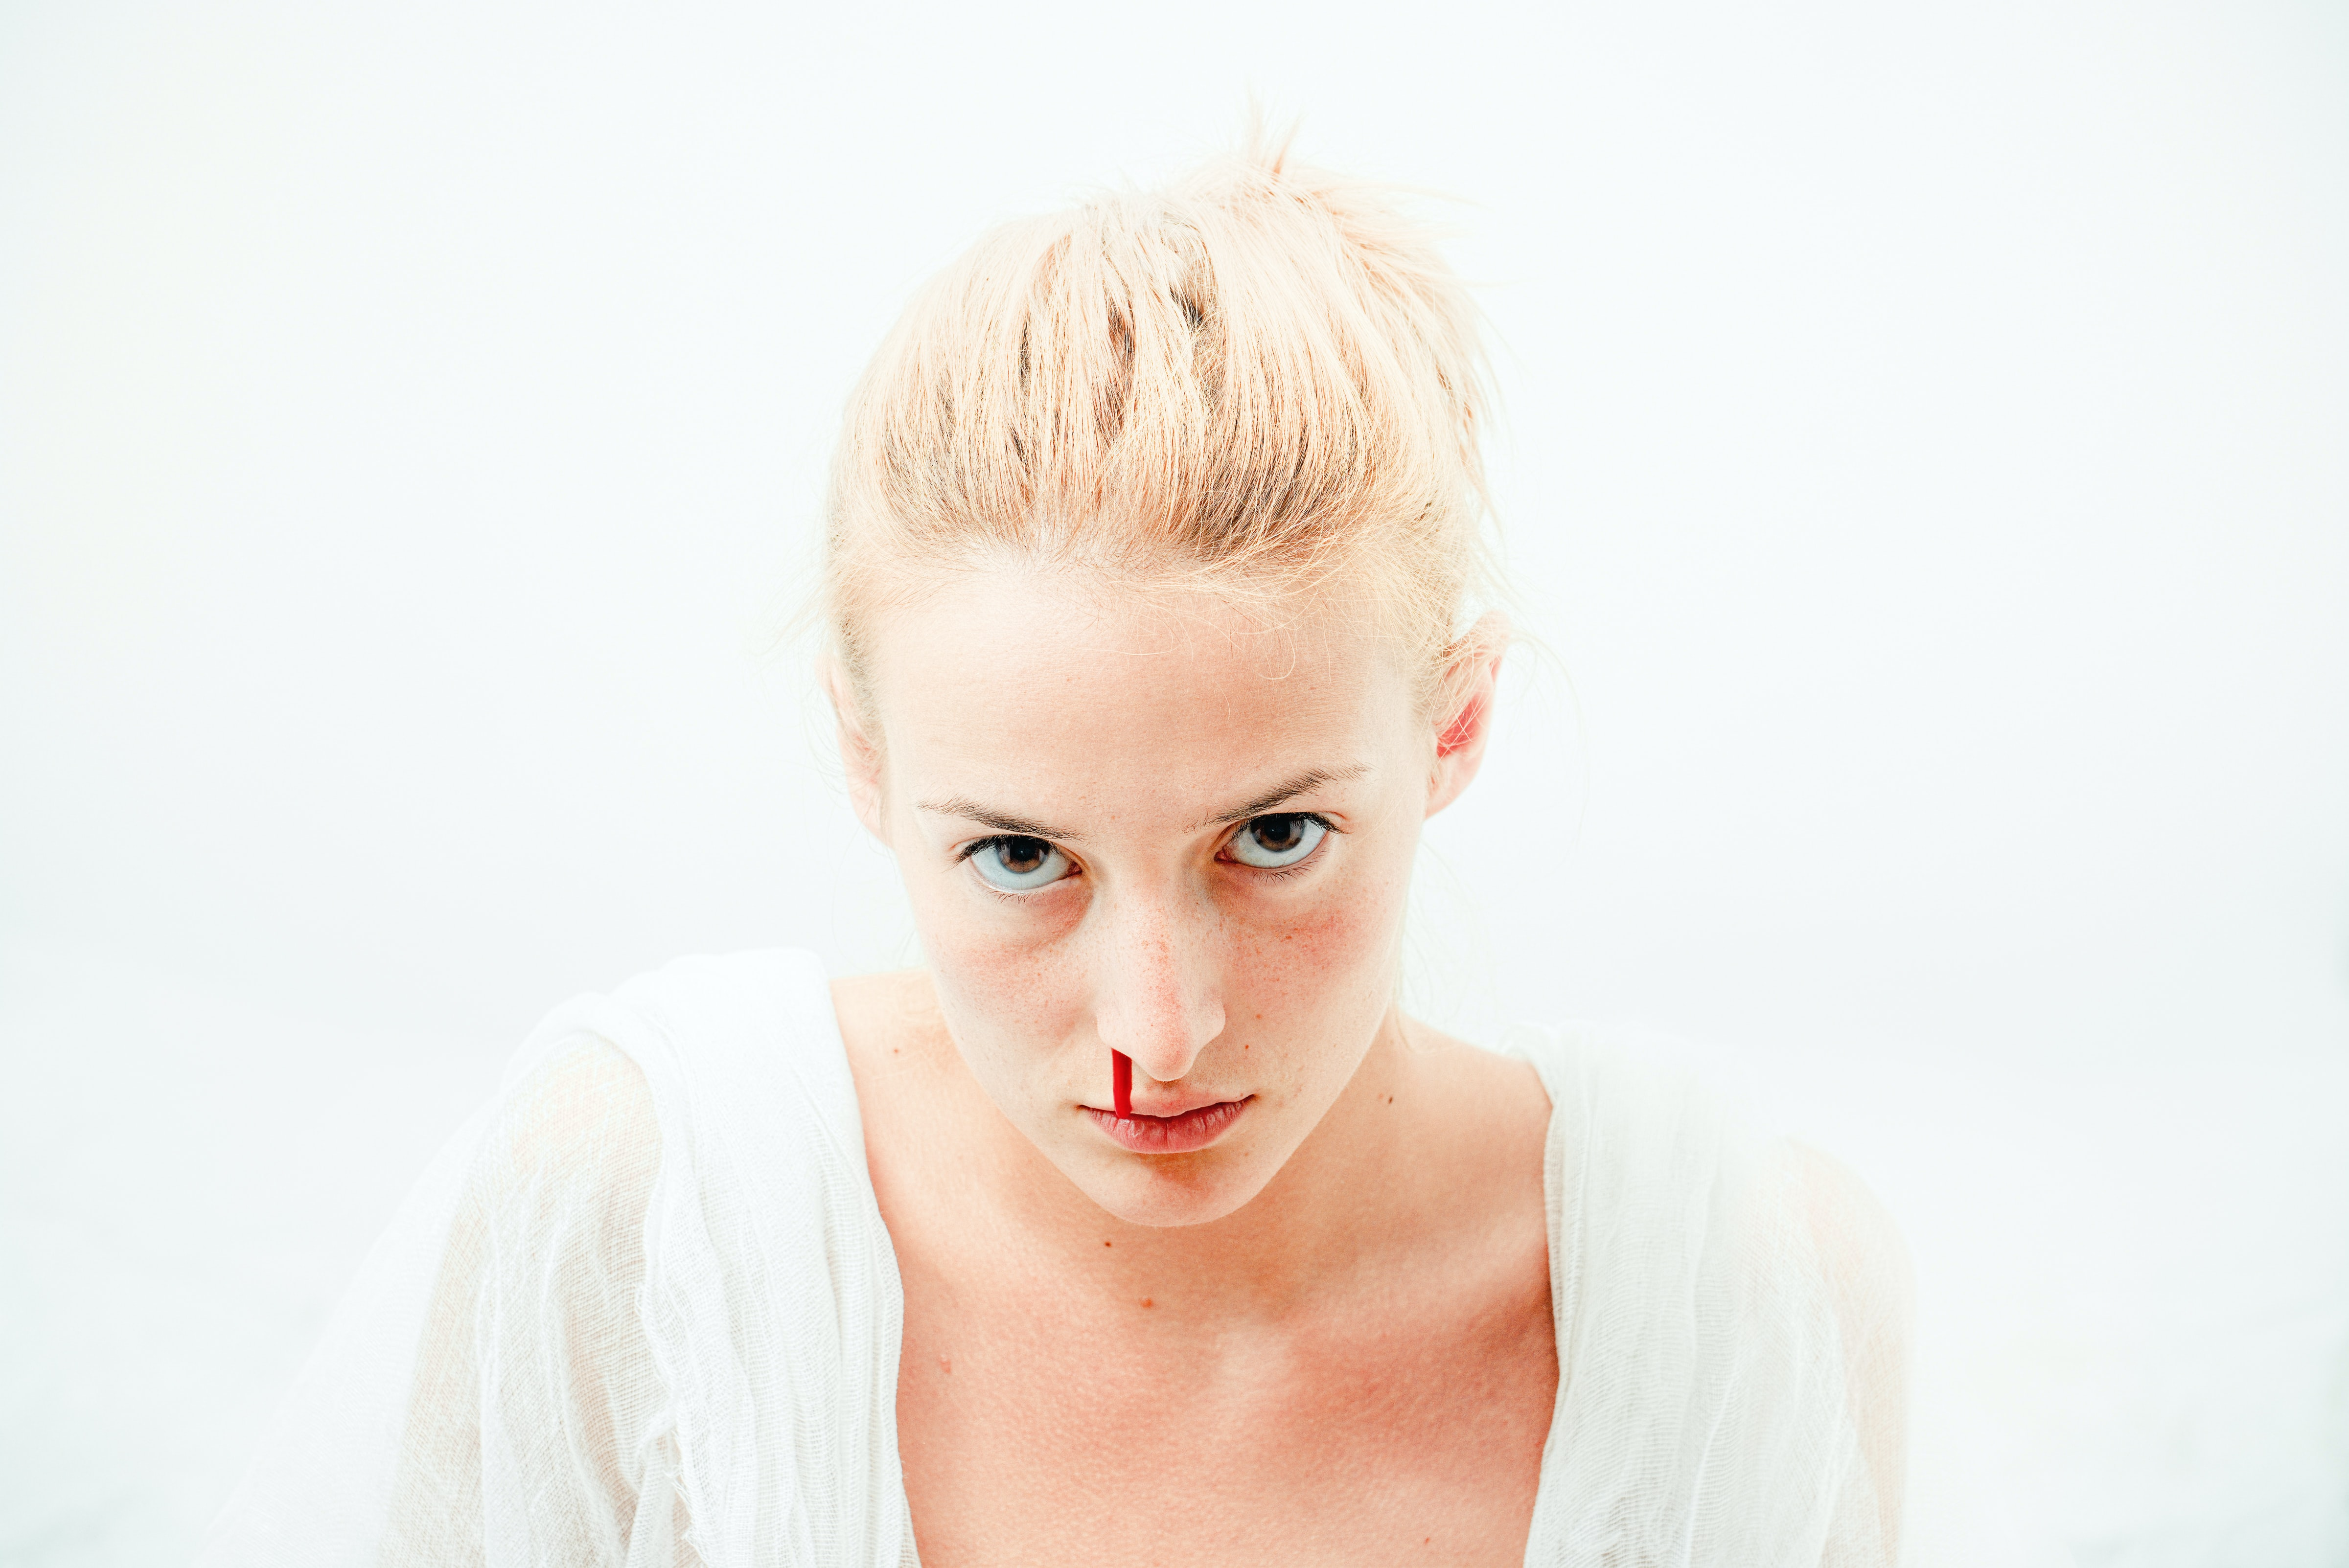 woman's bleeding nose with white background